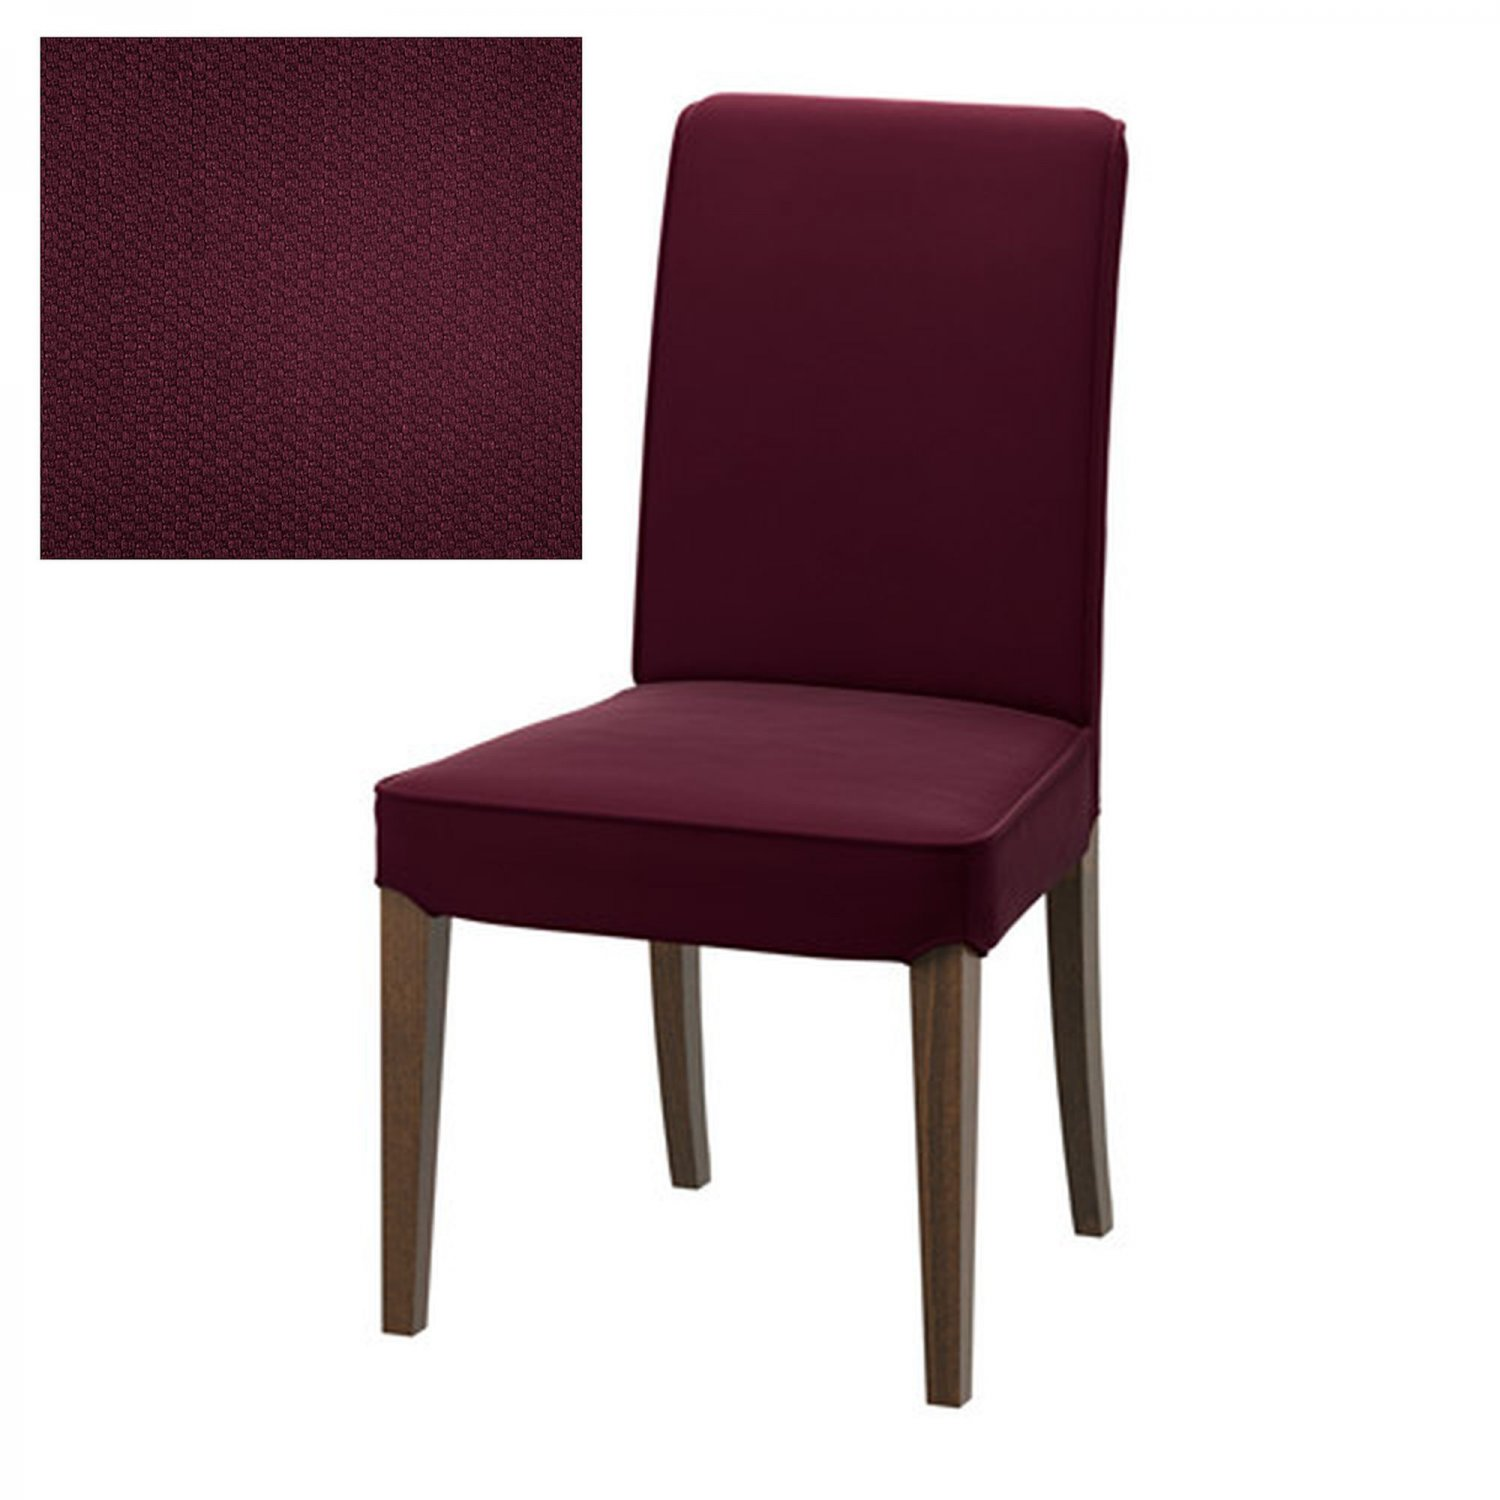 Ikea Stuhl Millberget Red Ikea Chair Tullsta Chair Ransta Red Ikea Furniture Red Of